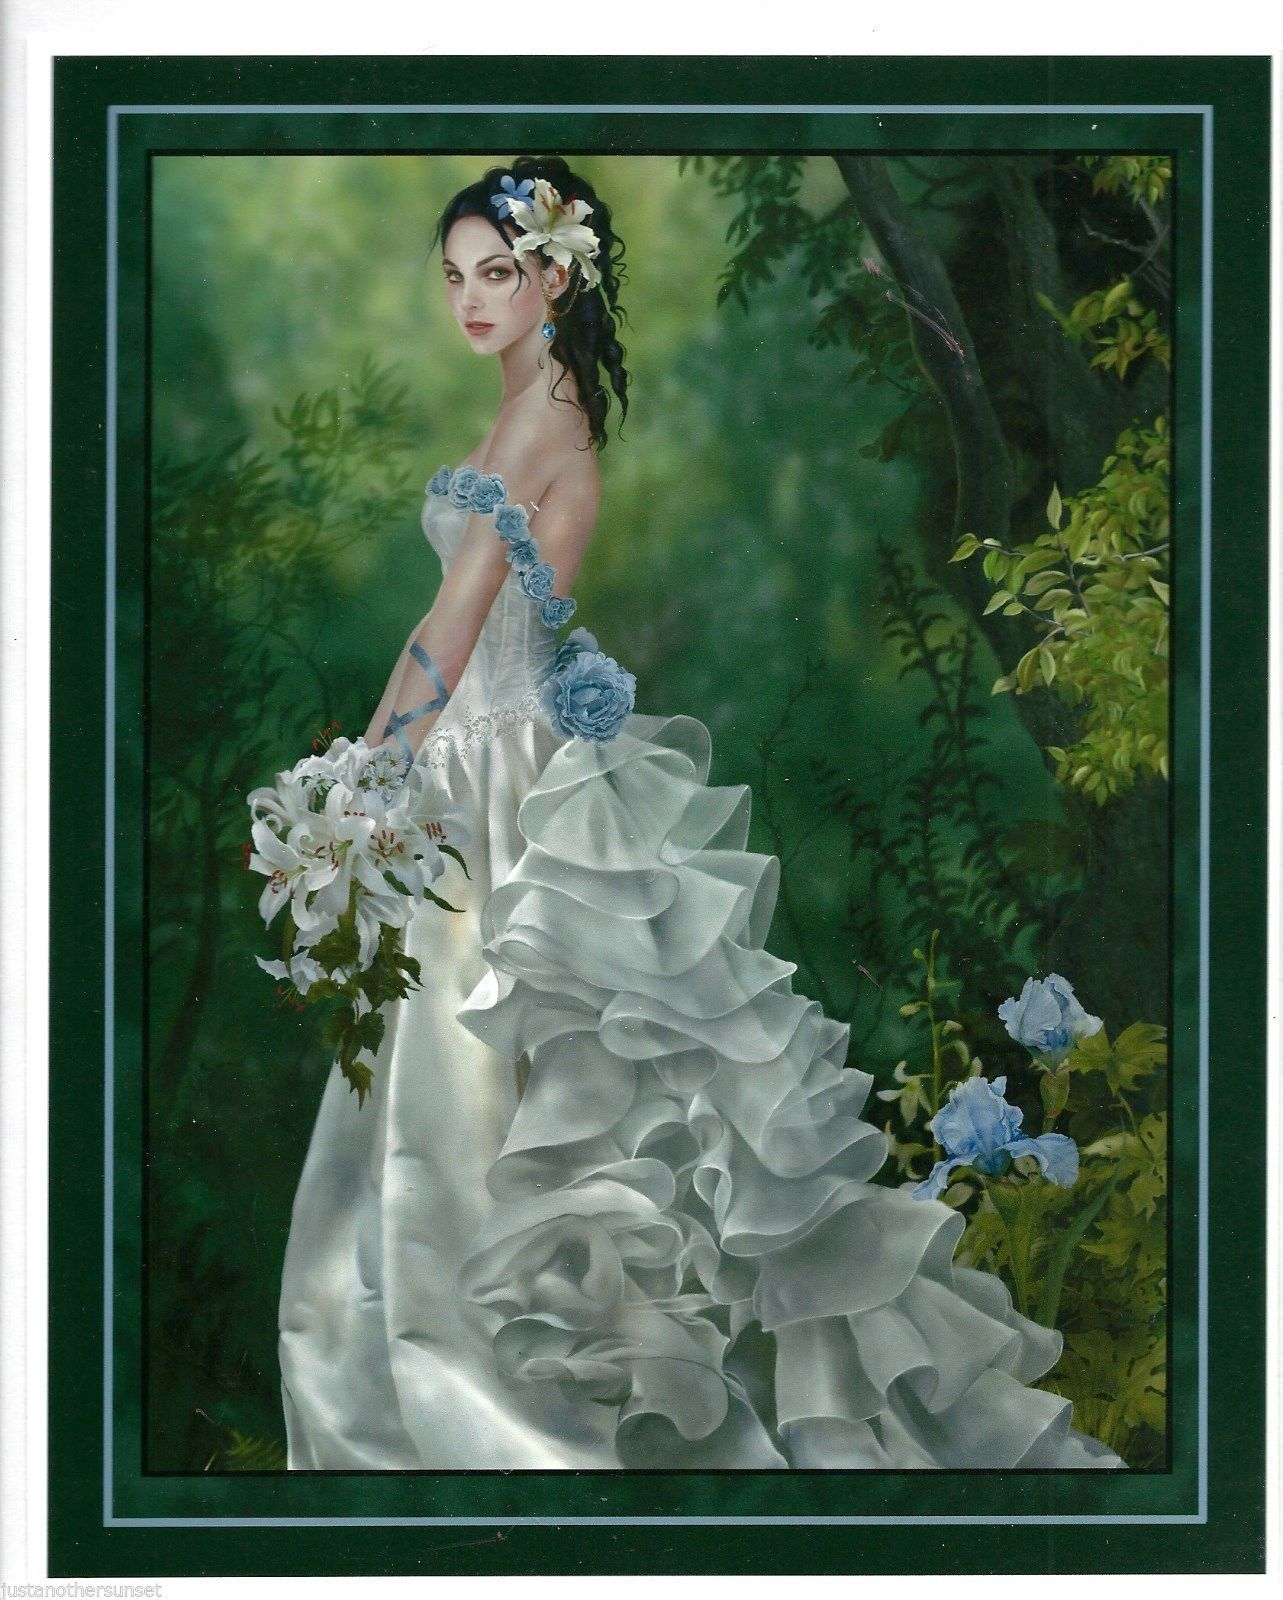 Nene Thomas Print Princess Lyrahe Bride Wedding Dress Fantasy Art Blue Iris 8x10